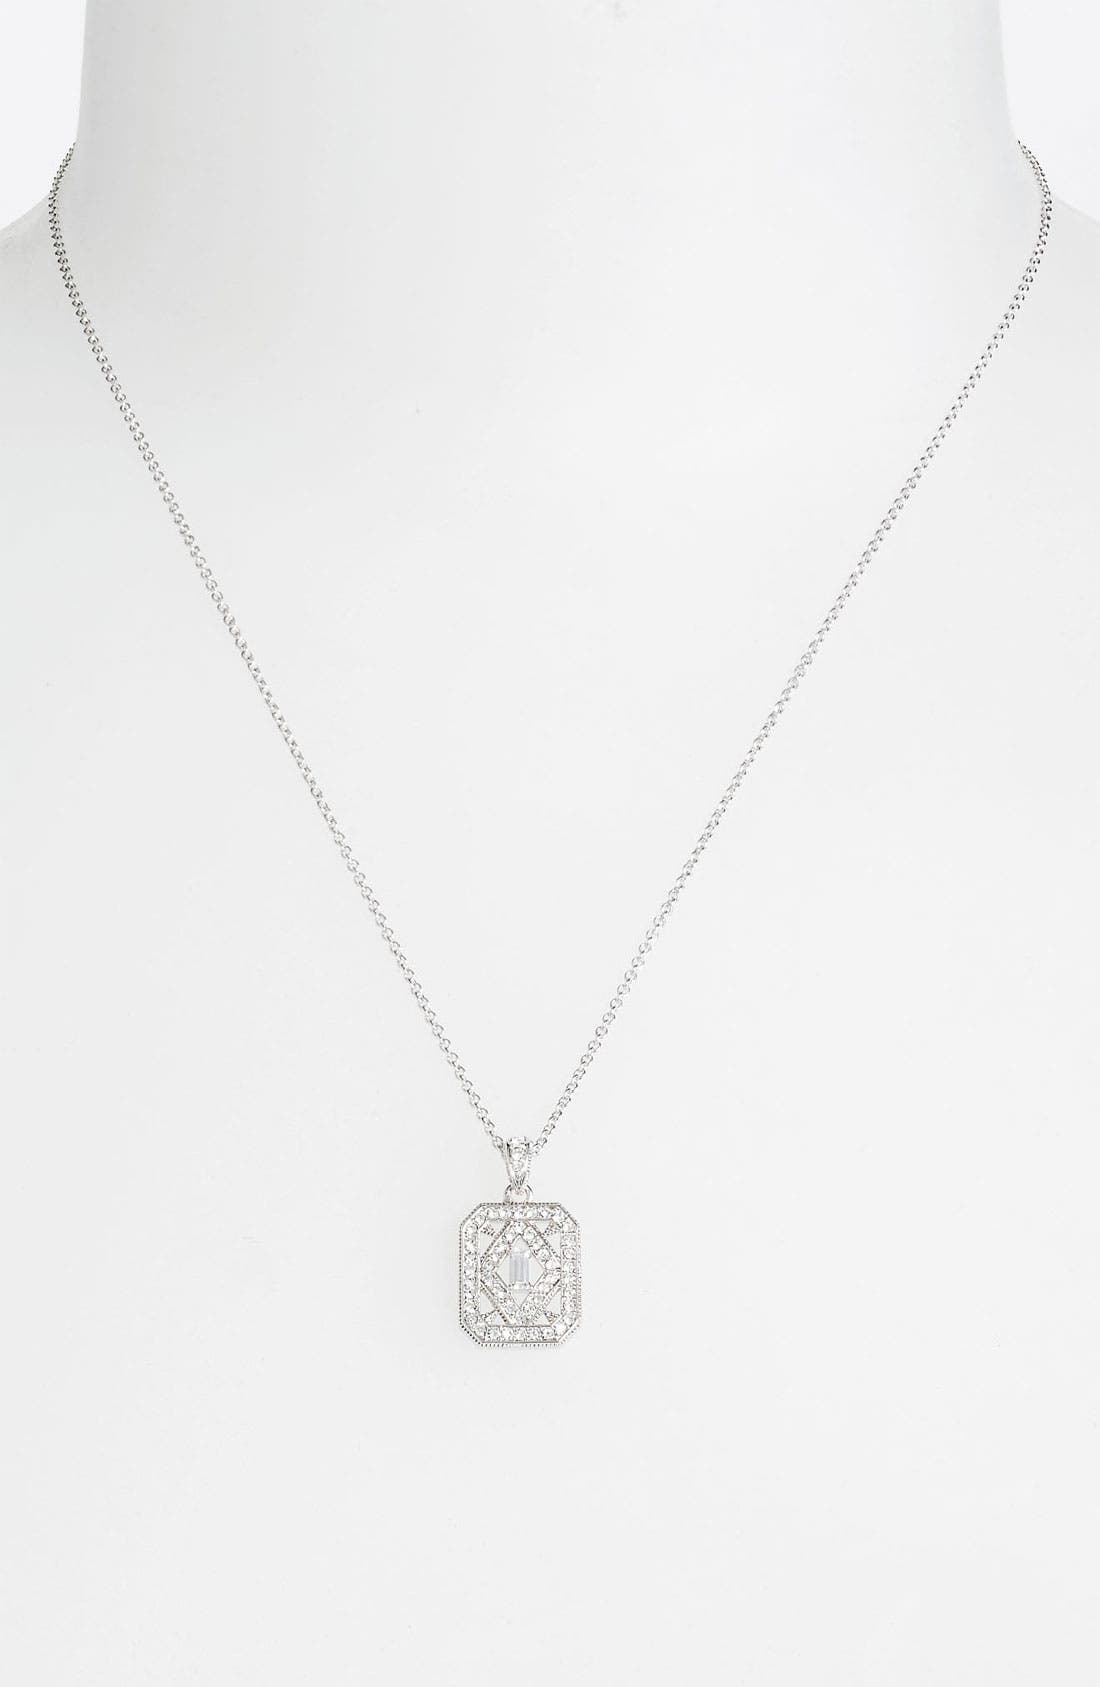 Alternate Image 1 Selected - Nadri 'Art Deco' Pendant Necklace